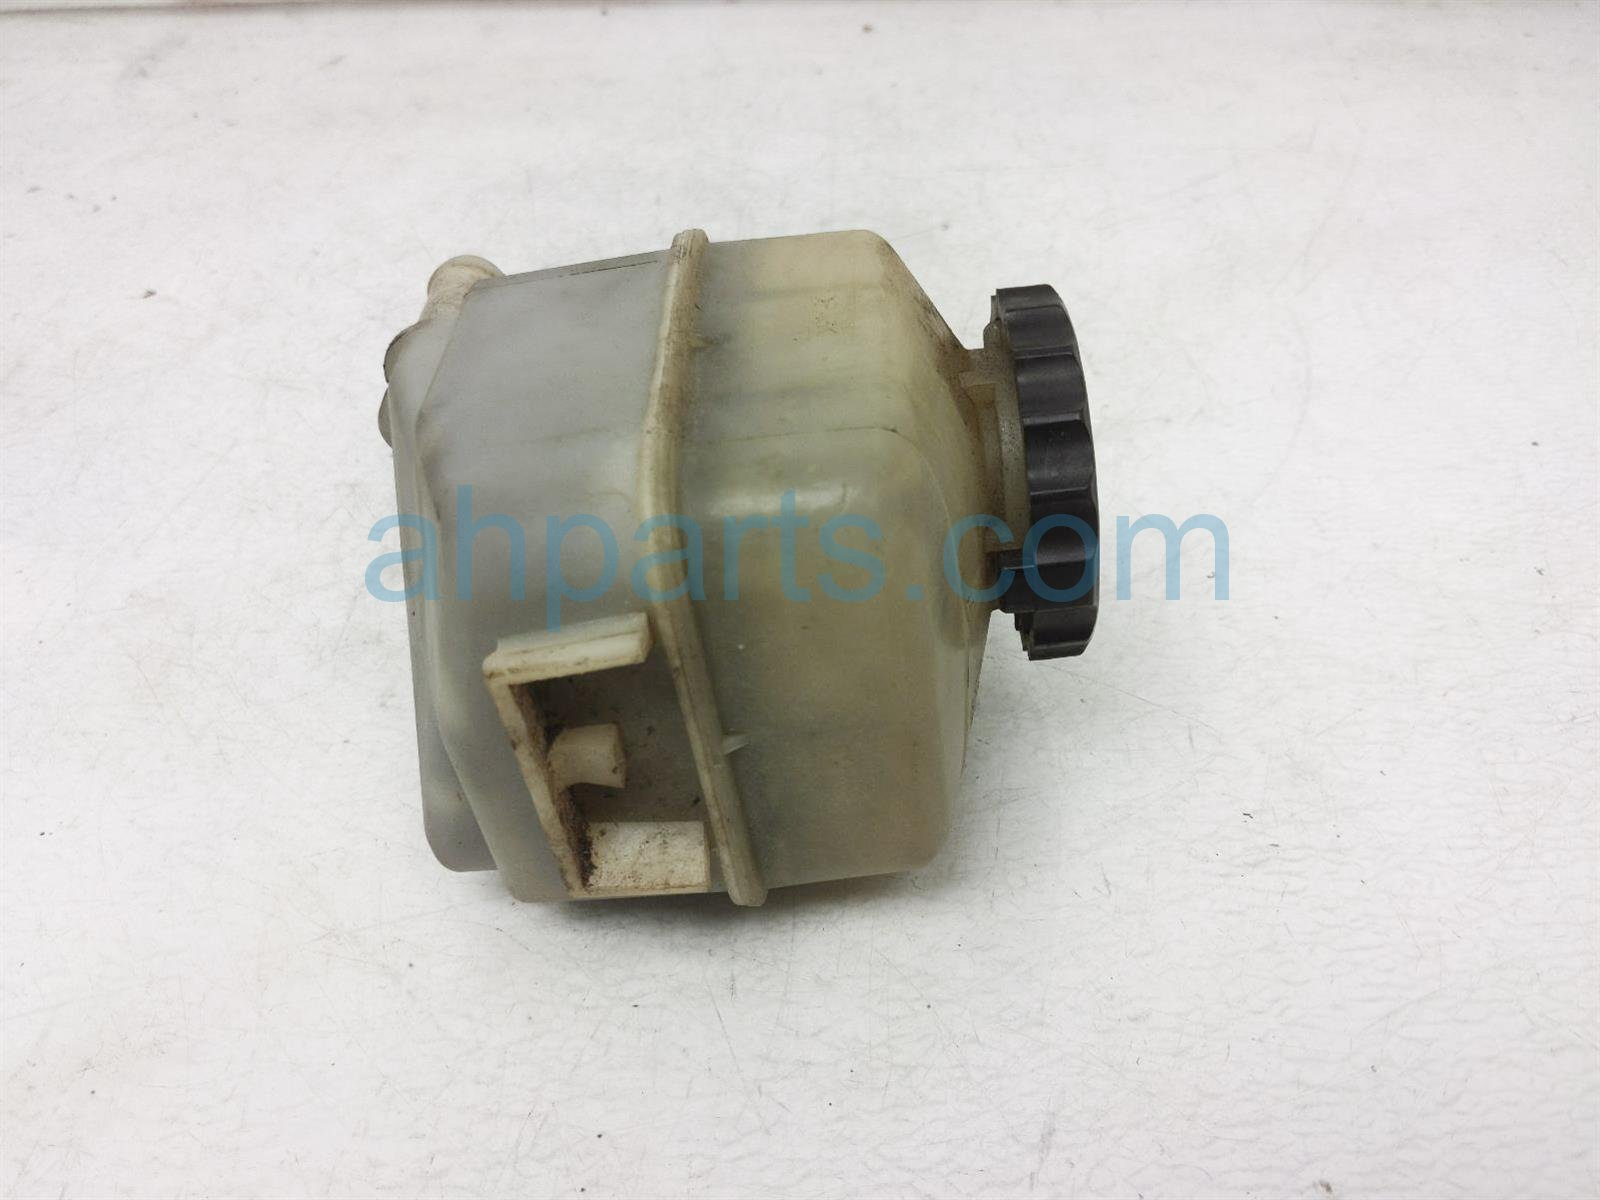 Sold 2001 Toyota Camry Reserve Bottle / Power Steering Reservoir Tank 44360 06010 Replacement